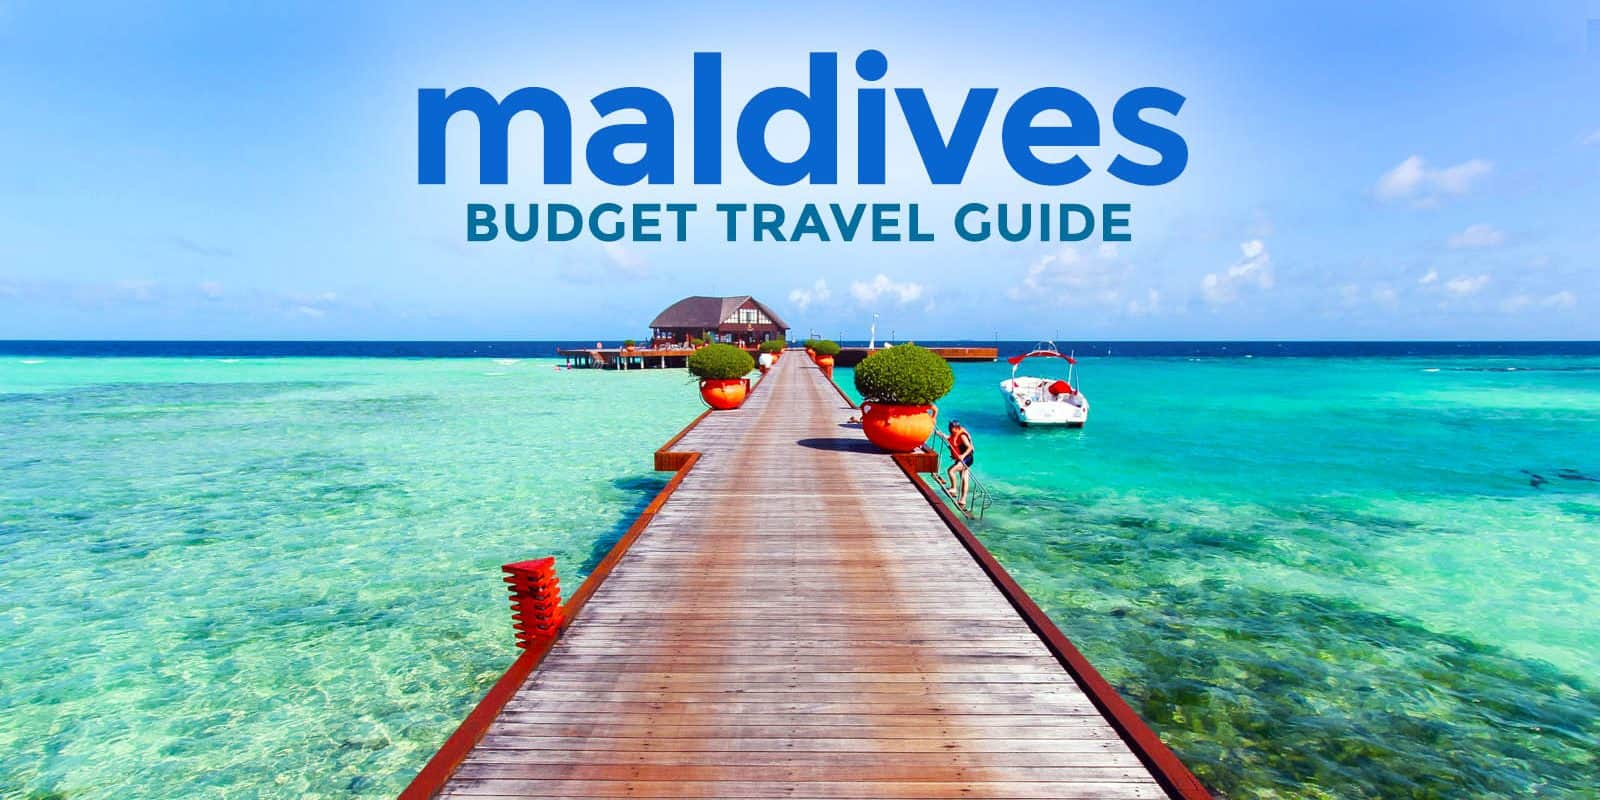 Maldives-Travel-Guide-1600x800.jpg